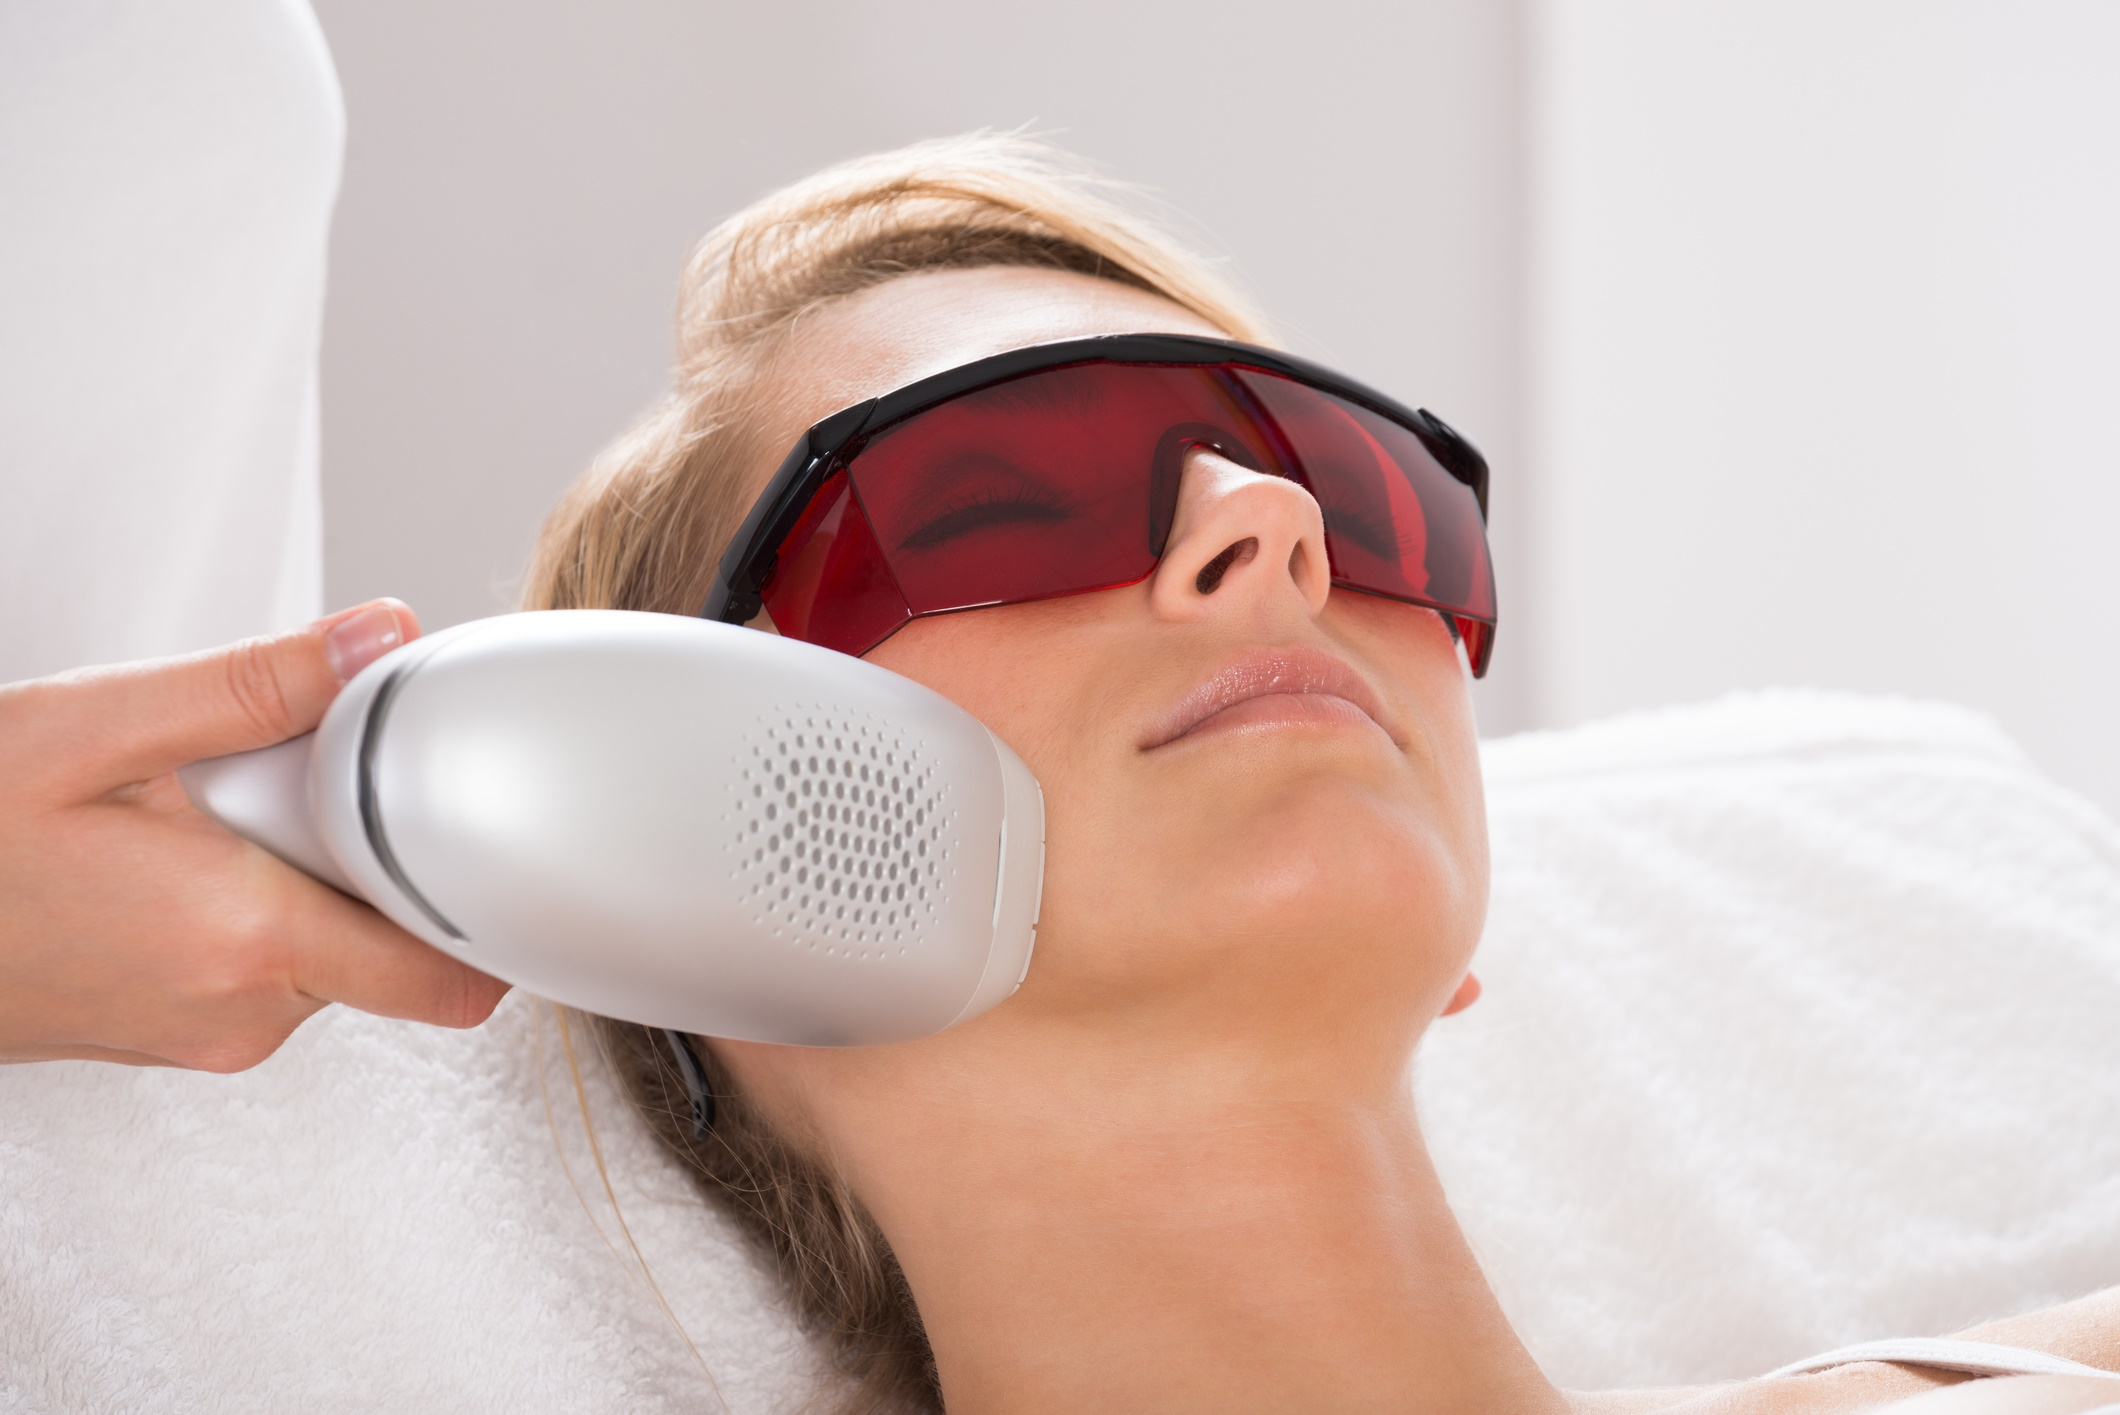 Laser treatment for hyperpigmentation